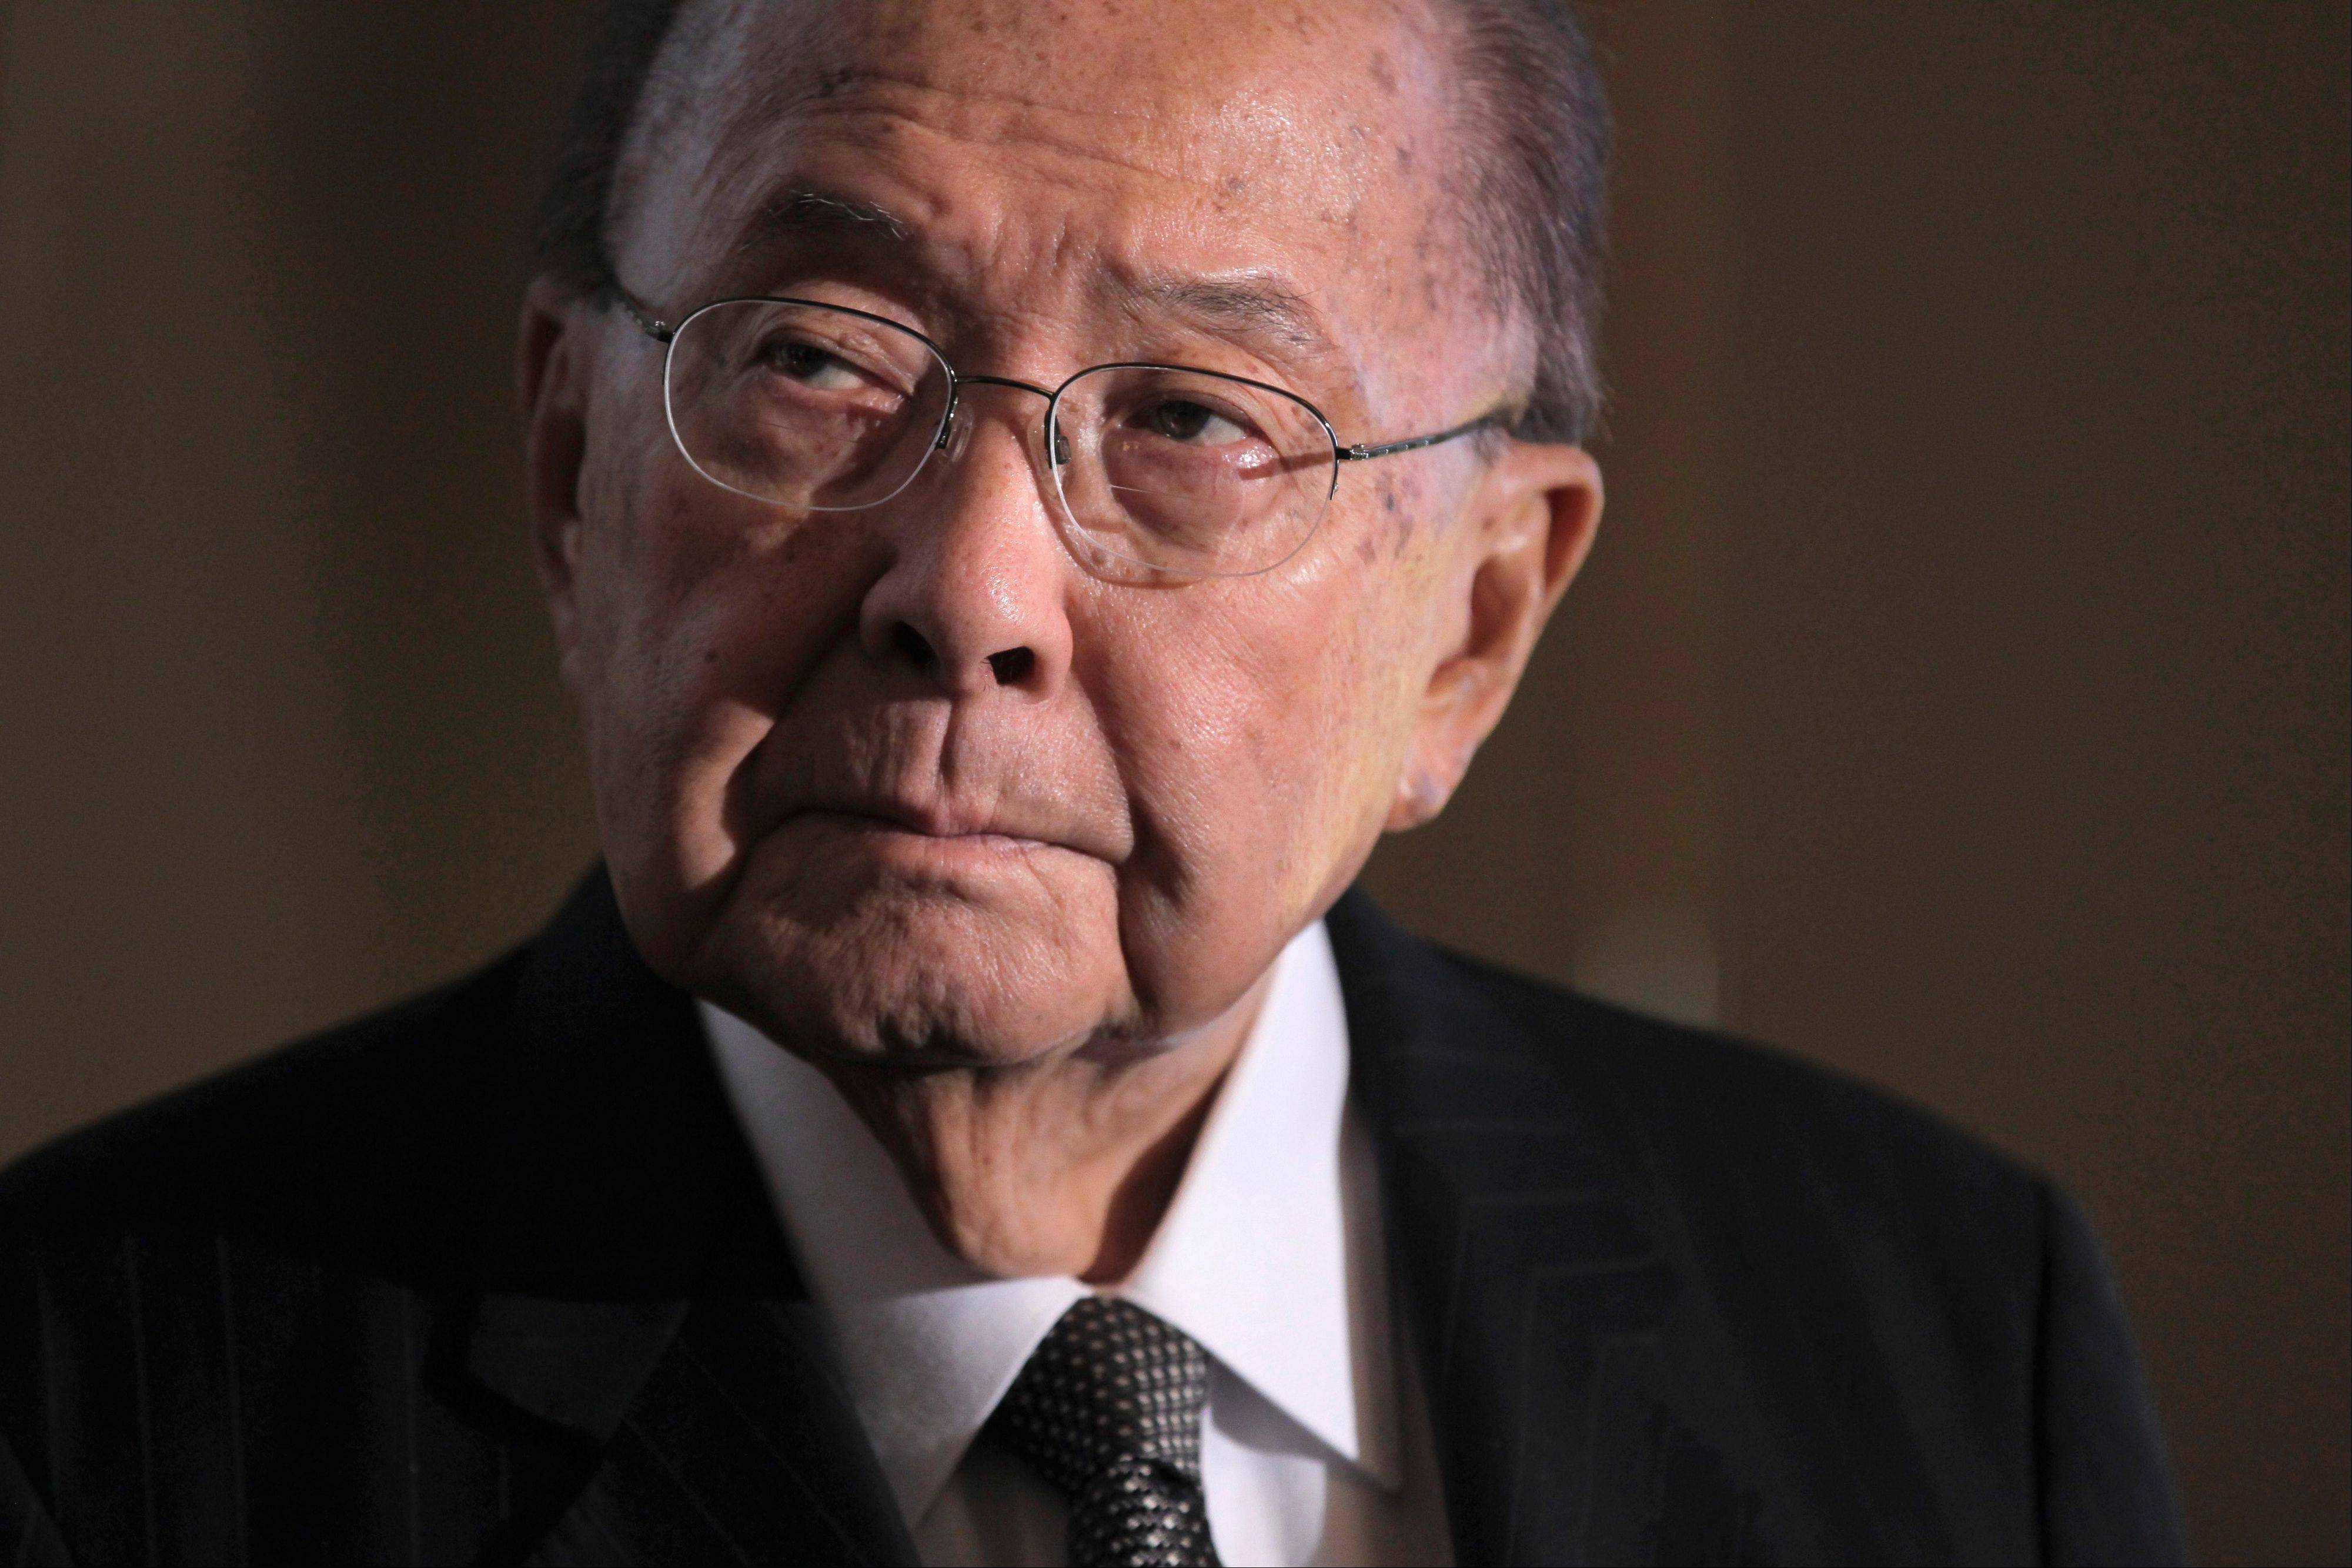 Sen. Daniel Inouye, D-Hawaii, president pro tempore of the Senate, and a recipient of the Medal of Honor, died of respiratory complications Monday. He was 88.